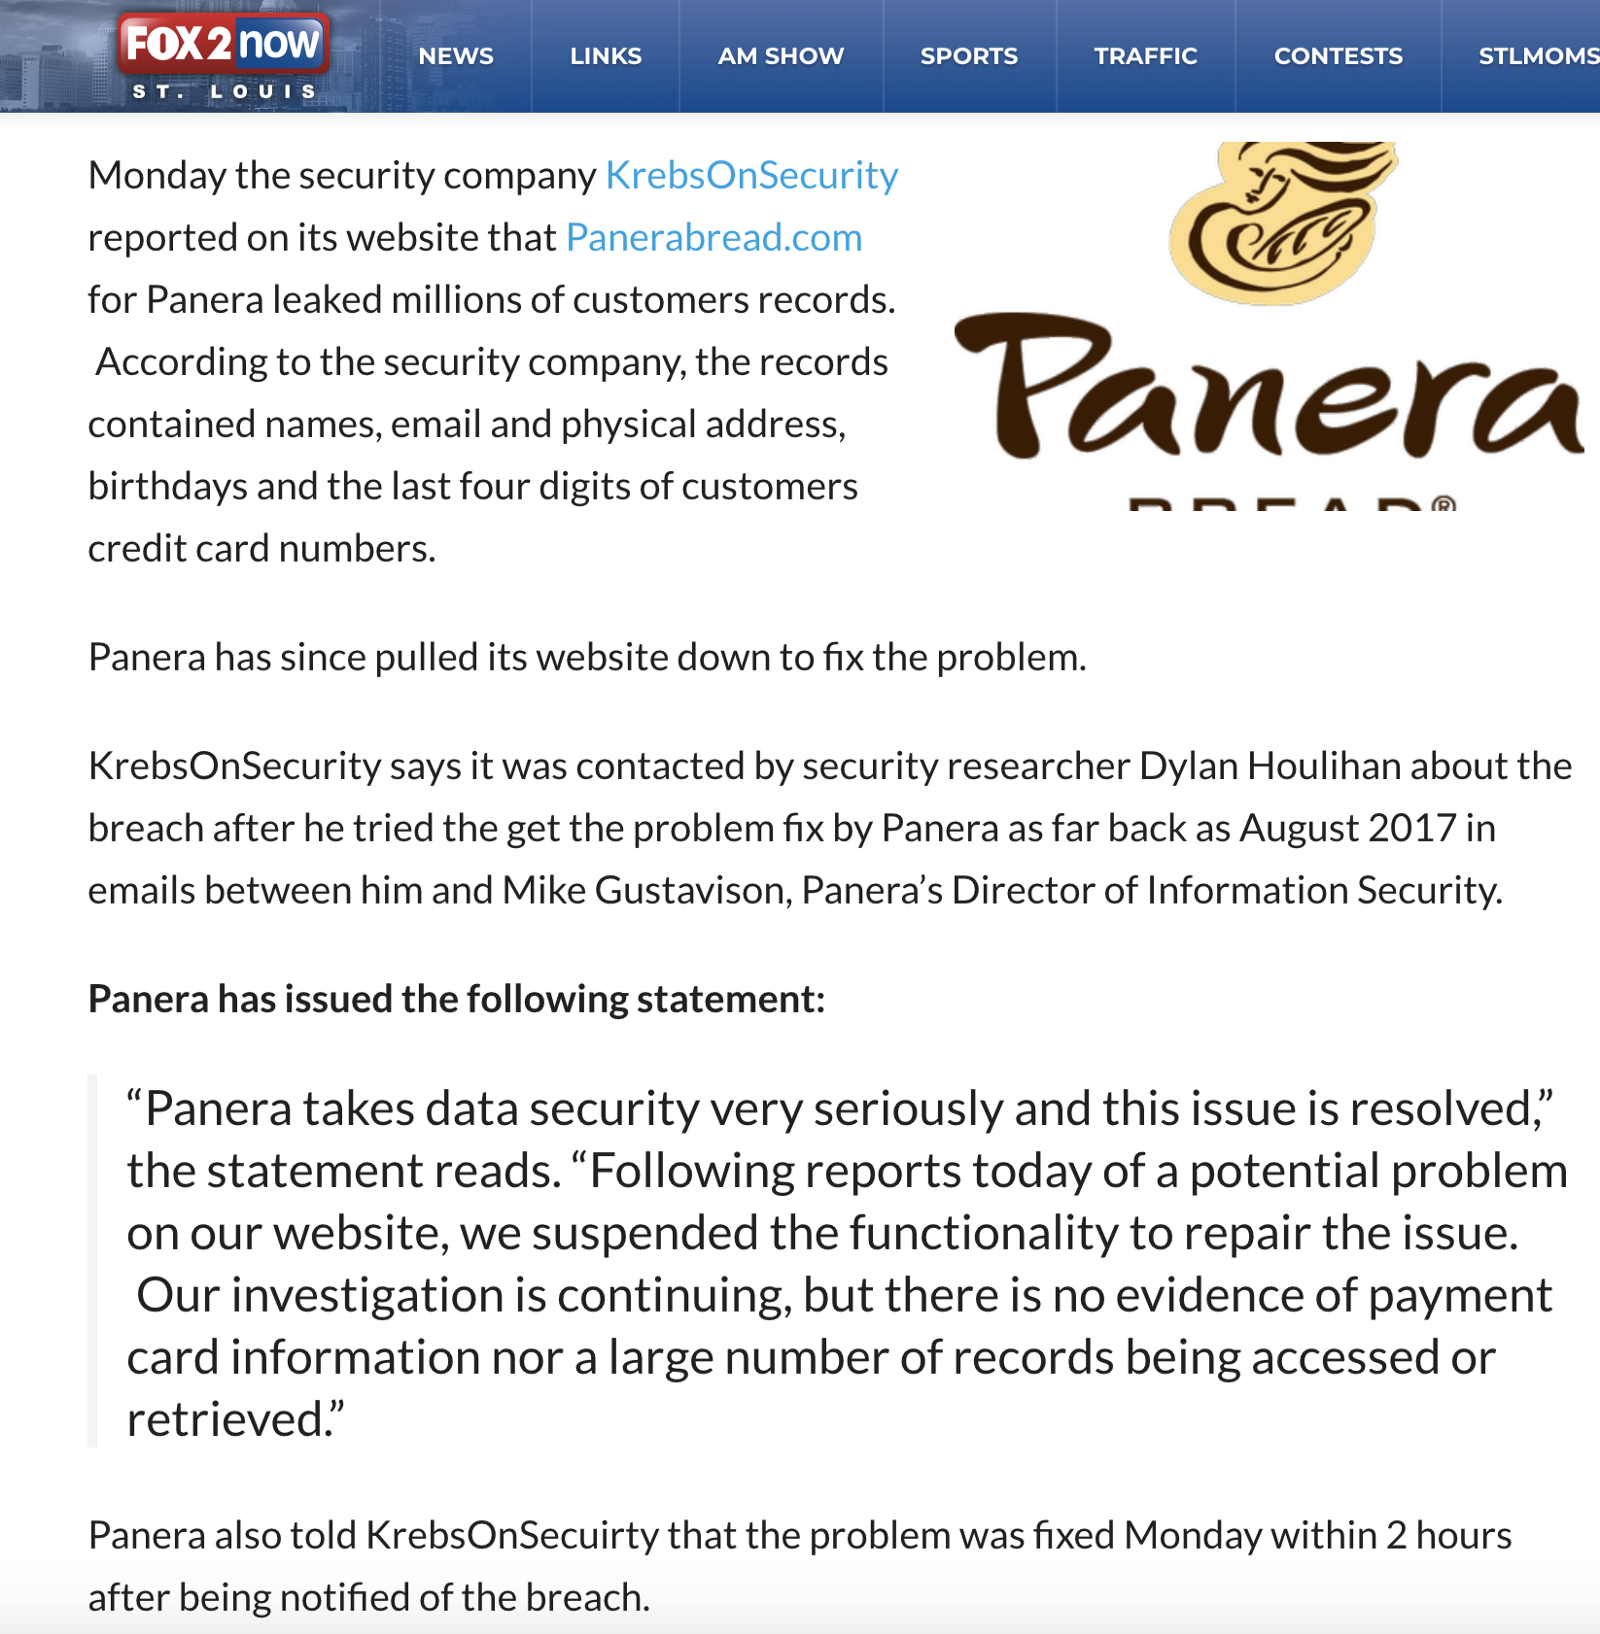 """And there it is, in bold letters and emphasized in quotation — """"Panera take data security very seriously and this issue is resolved."""